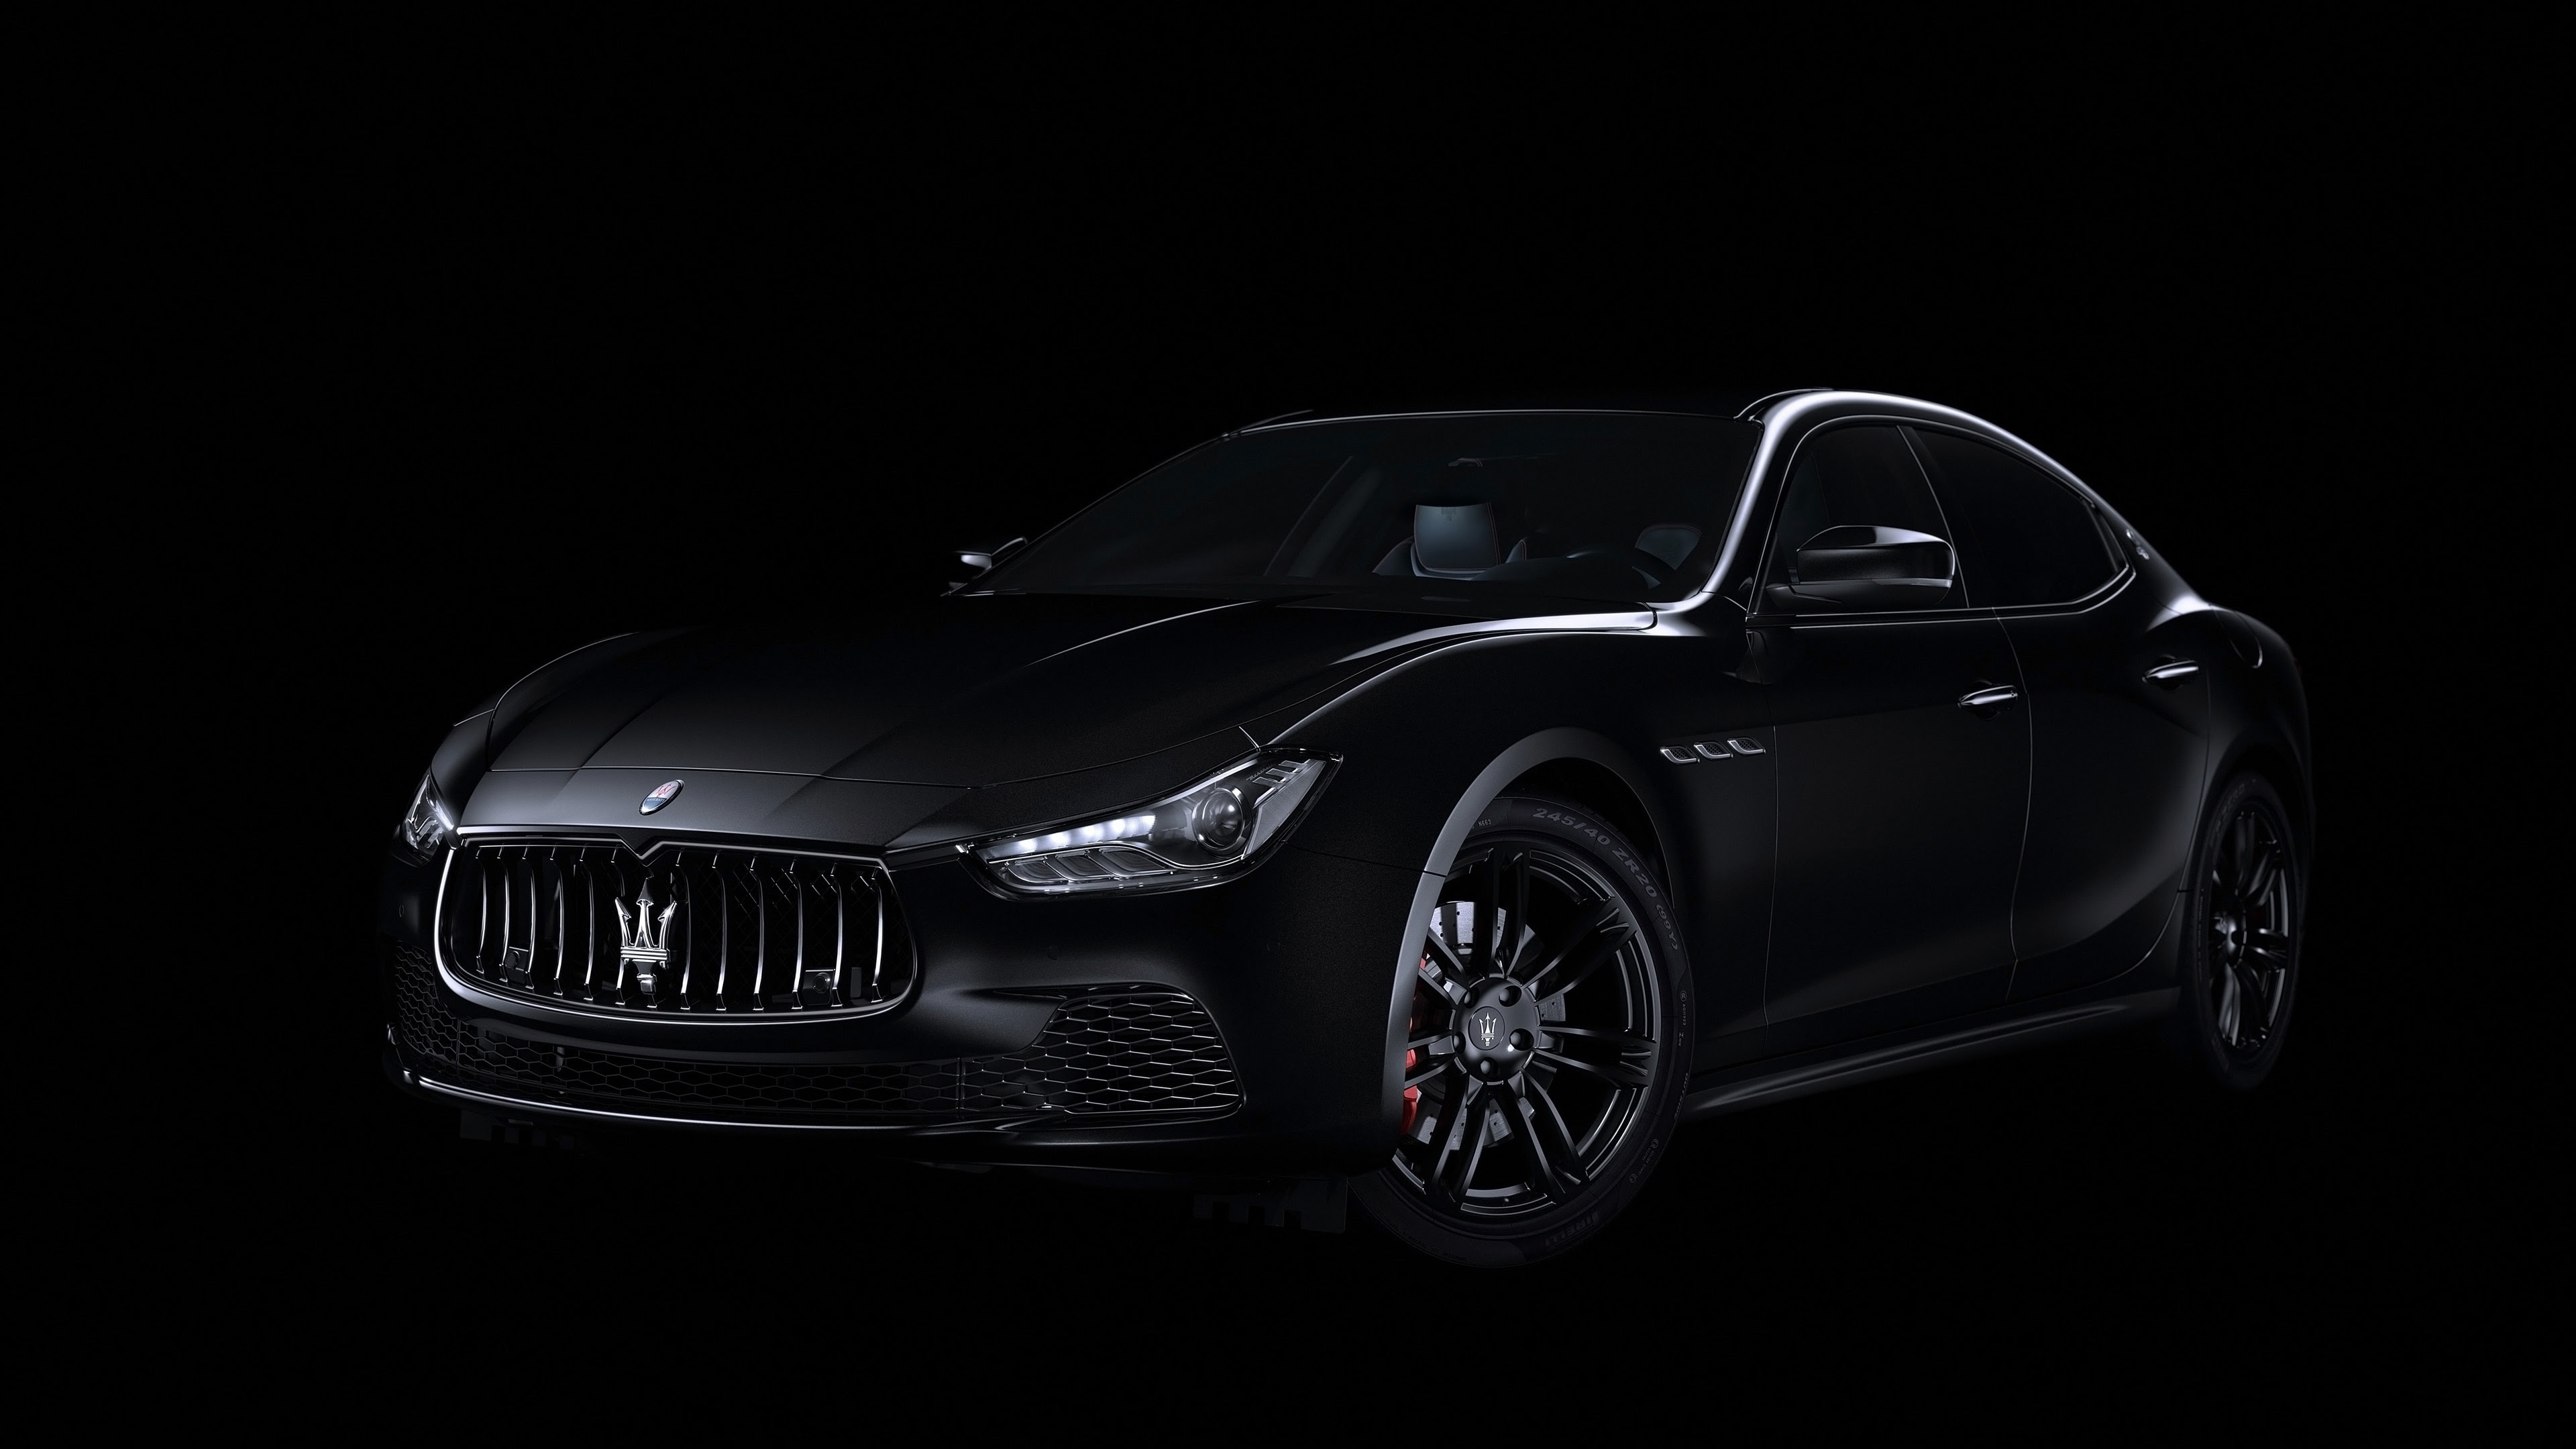 2018 Maserati Ghibli Nerissimo Black Edition 4K Wallpaper ...